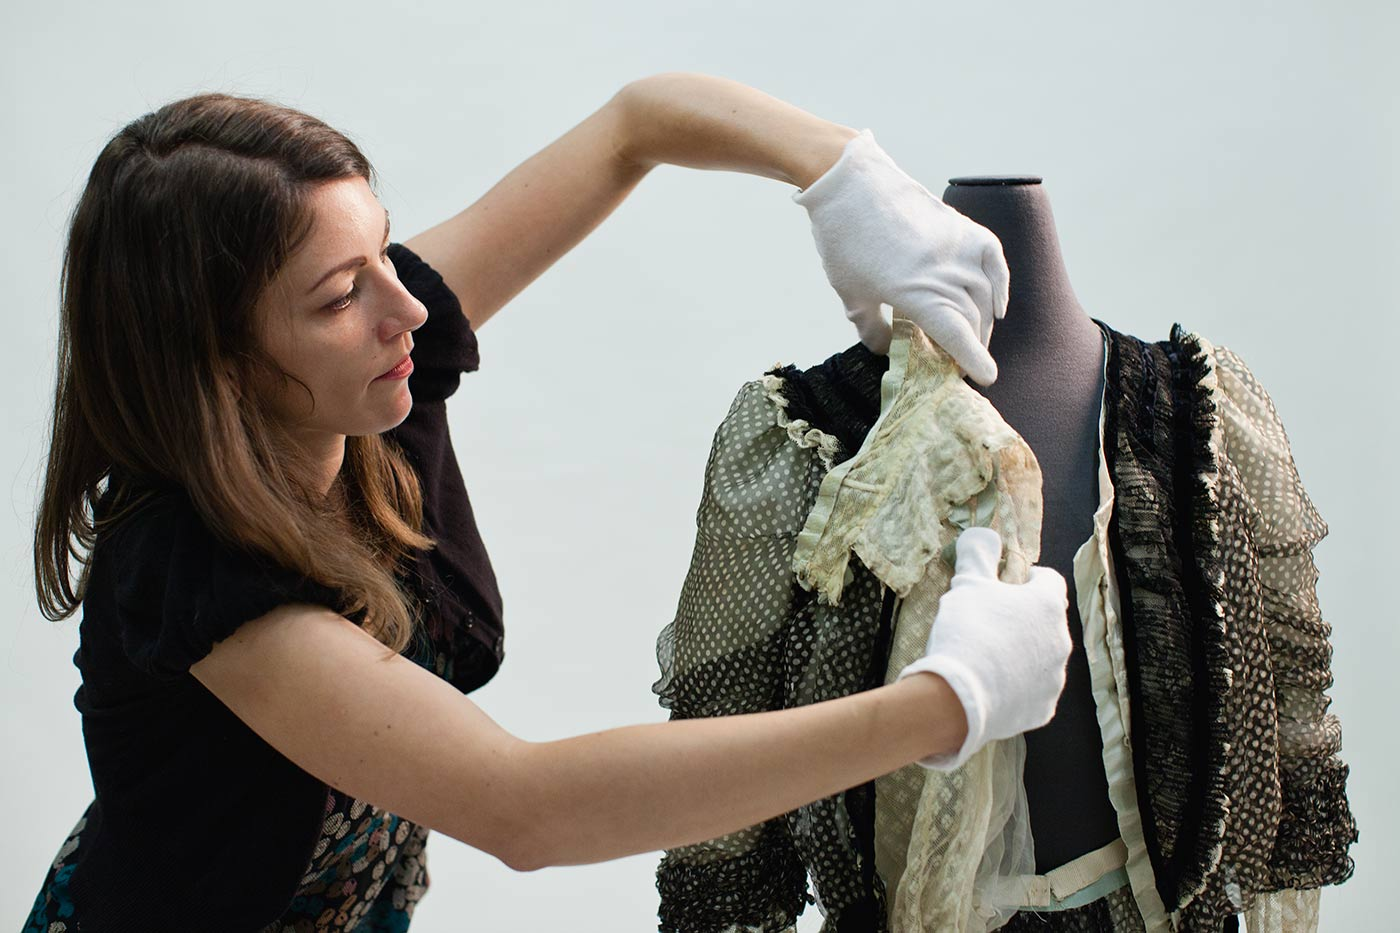 A conservator arranges the front of a bodice. - click to view larger image